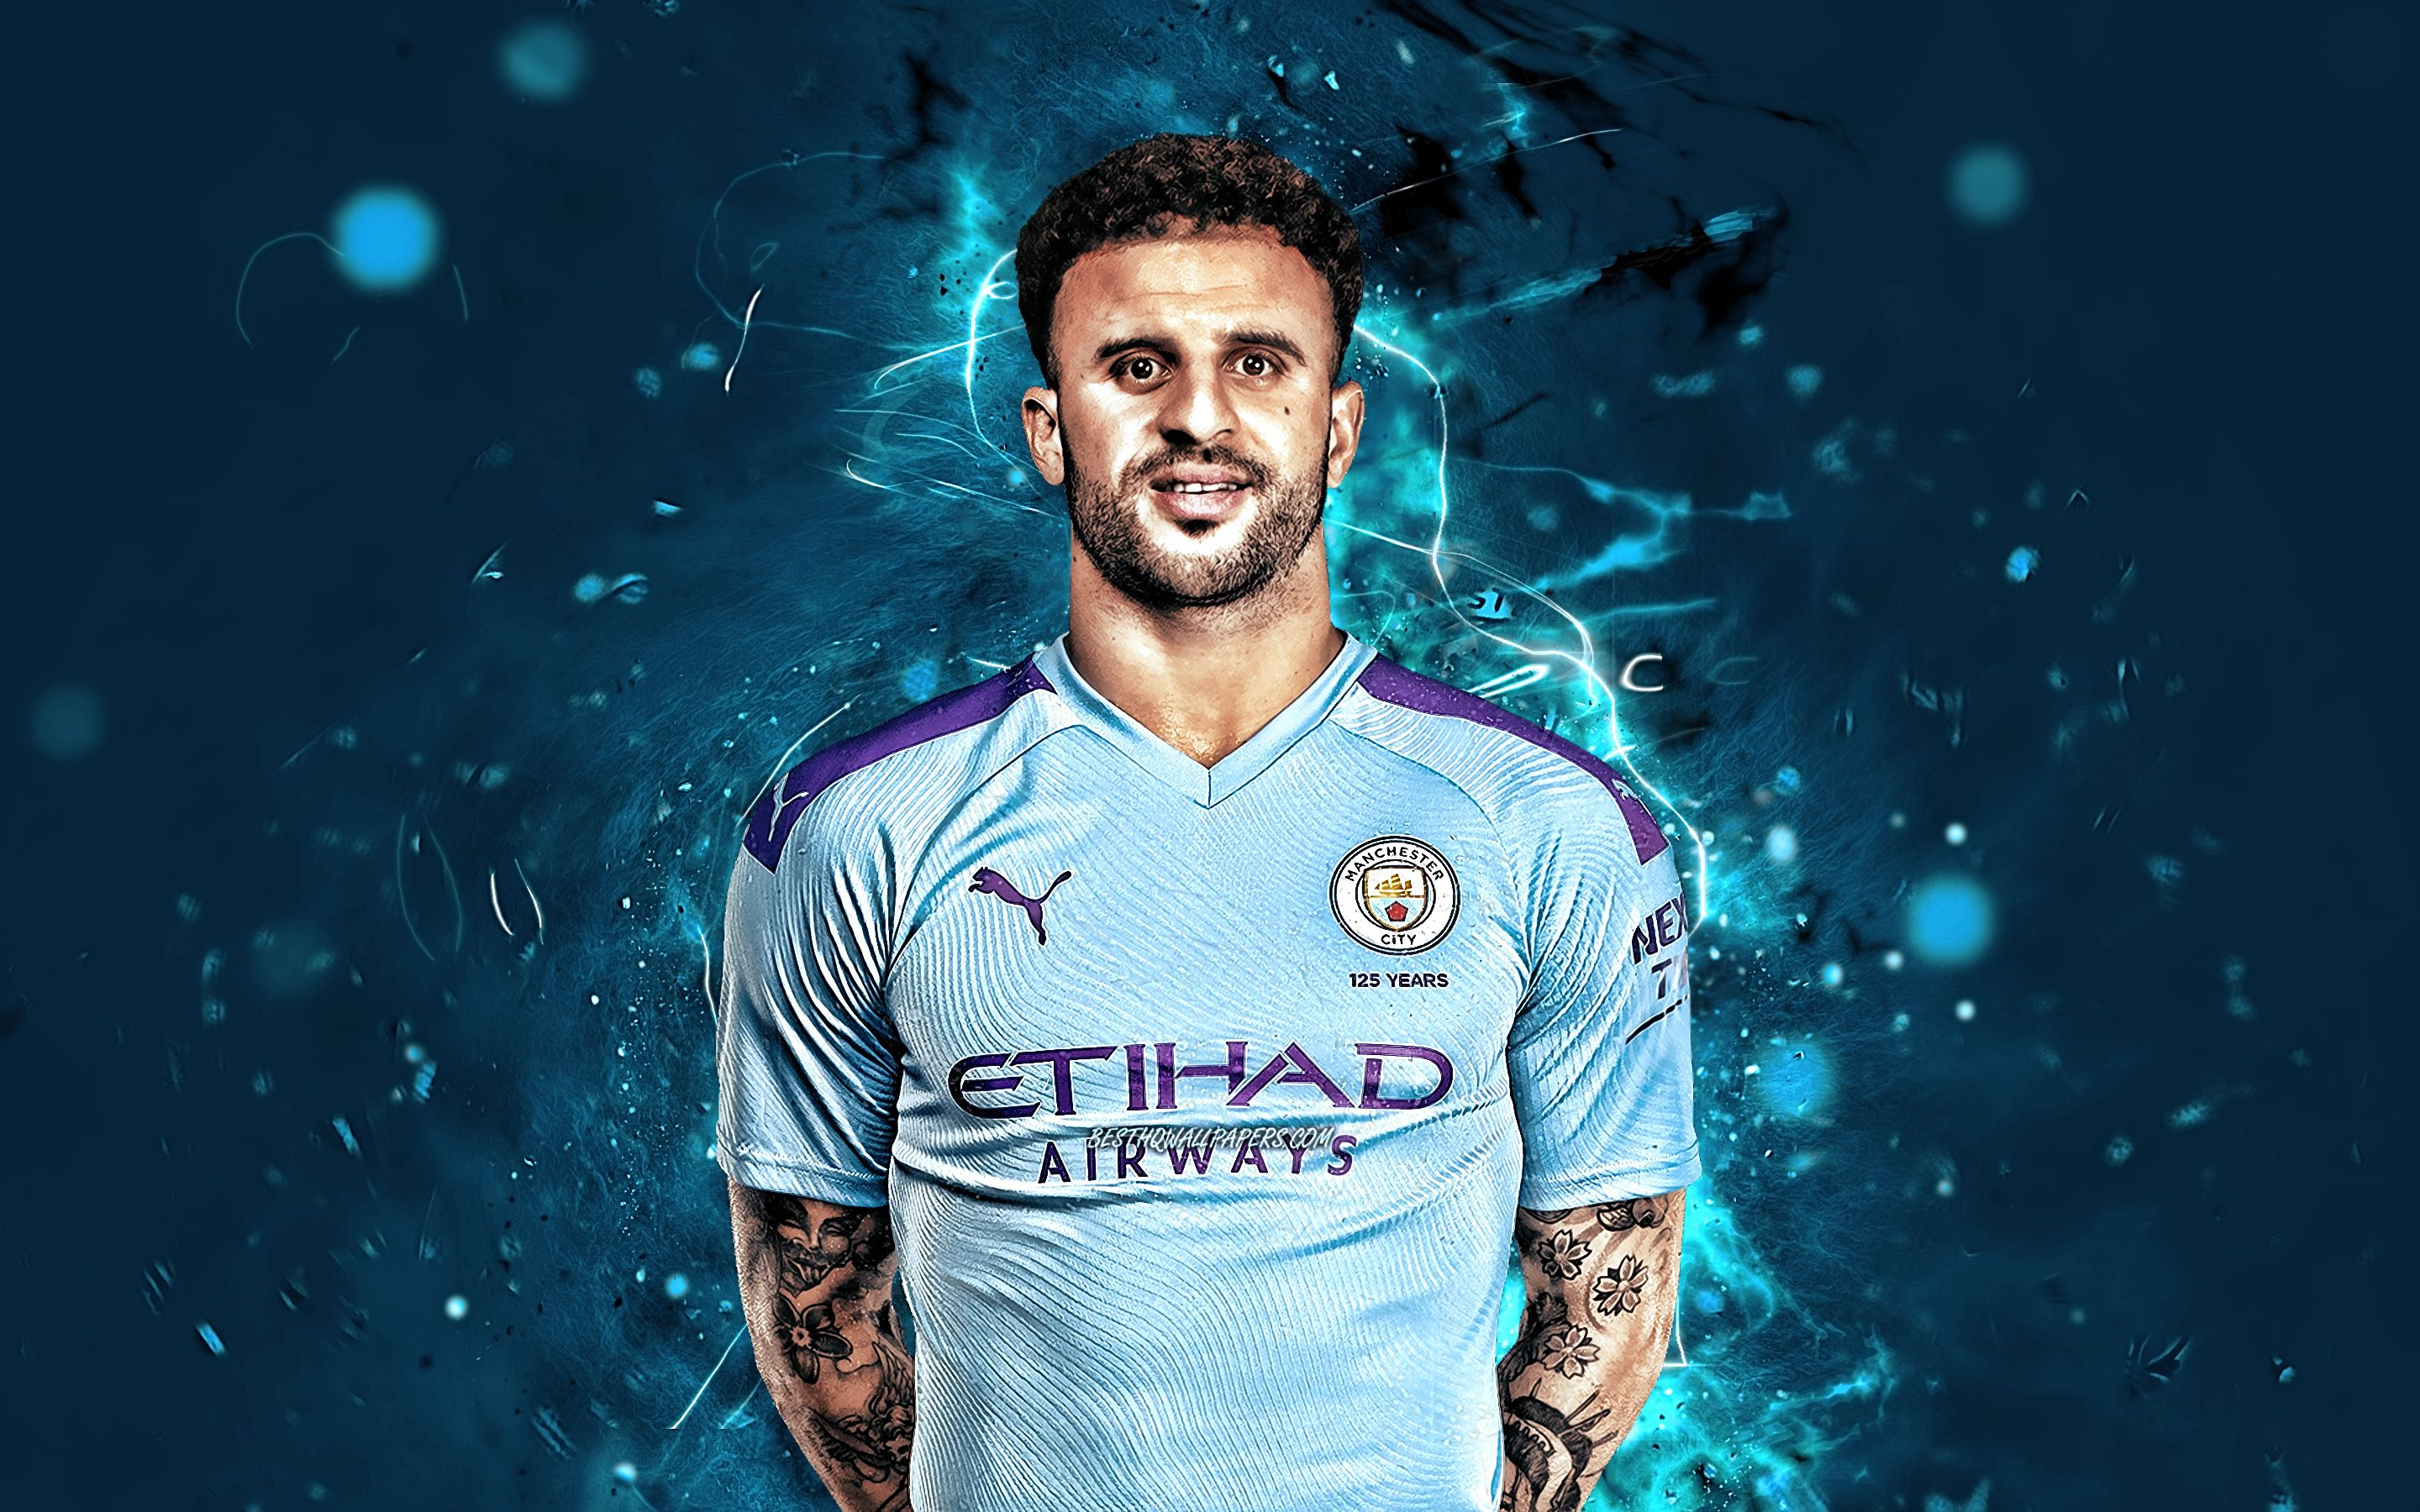 Man City Players 2020 HD Computer Wallpapers - Wallpaper Cave